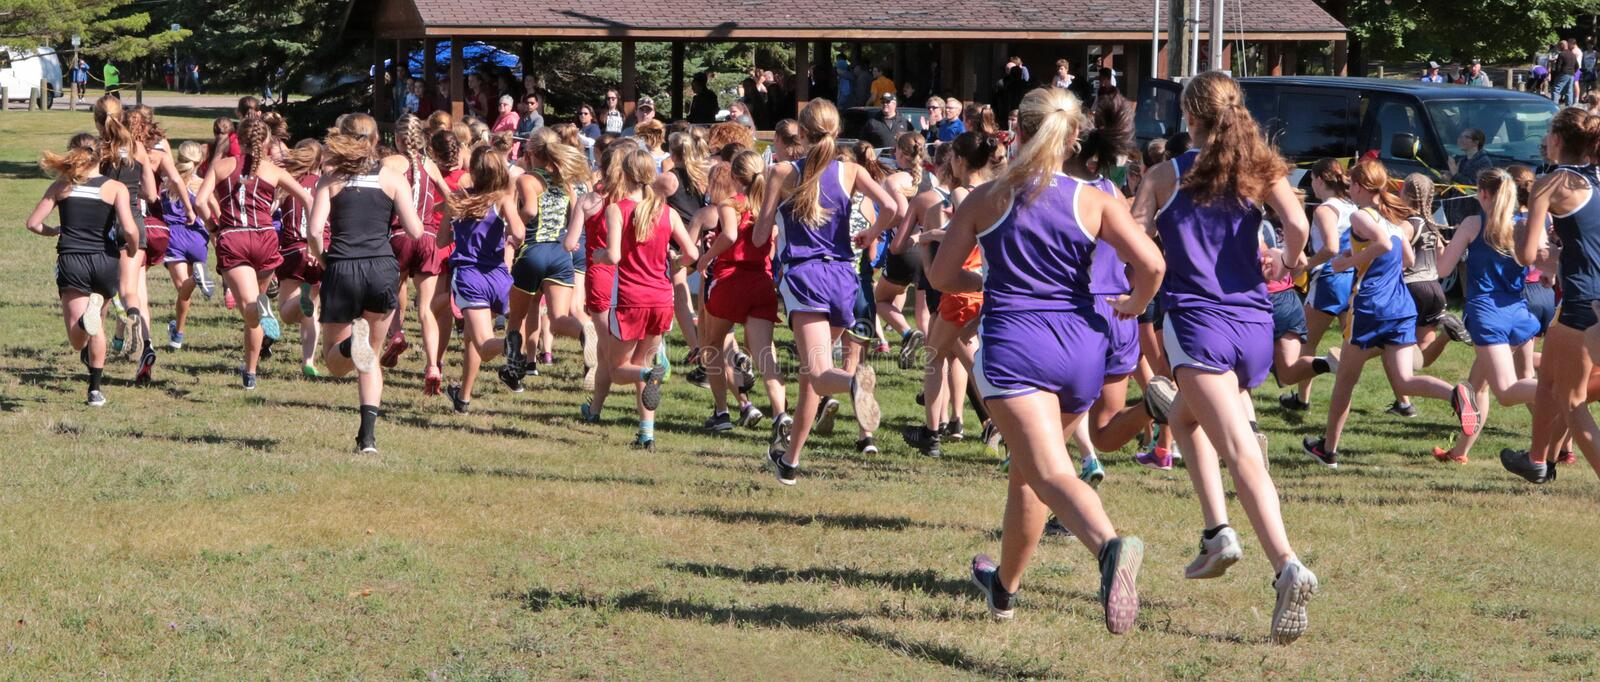 GIRLS High School Cross Country Race royalty free stock image